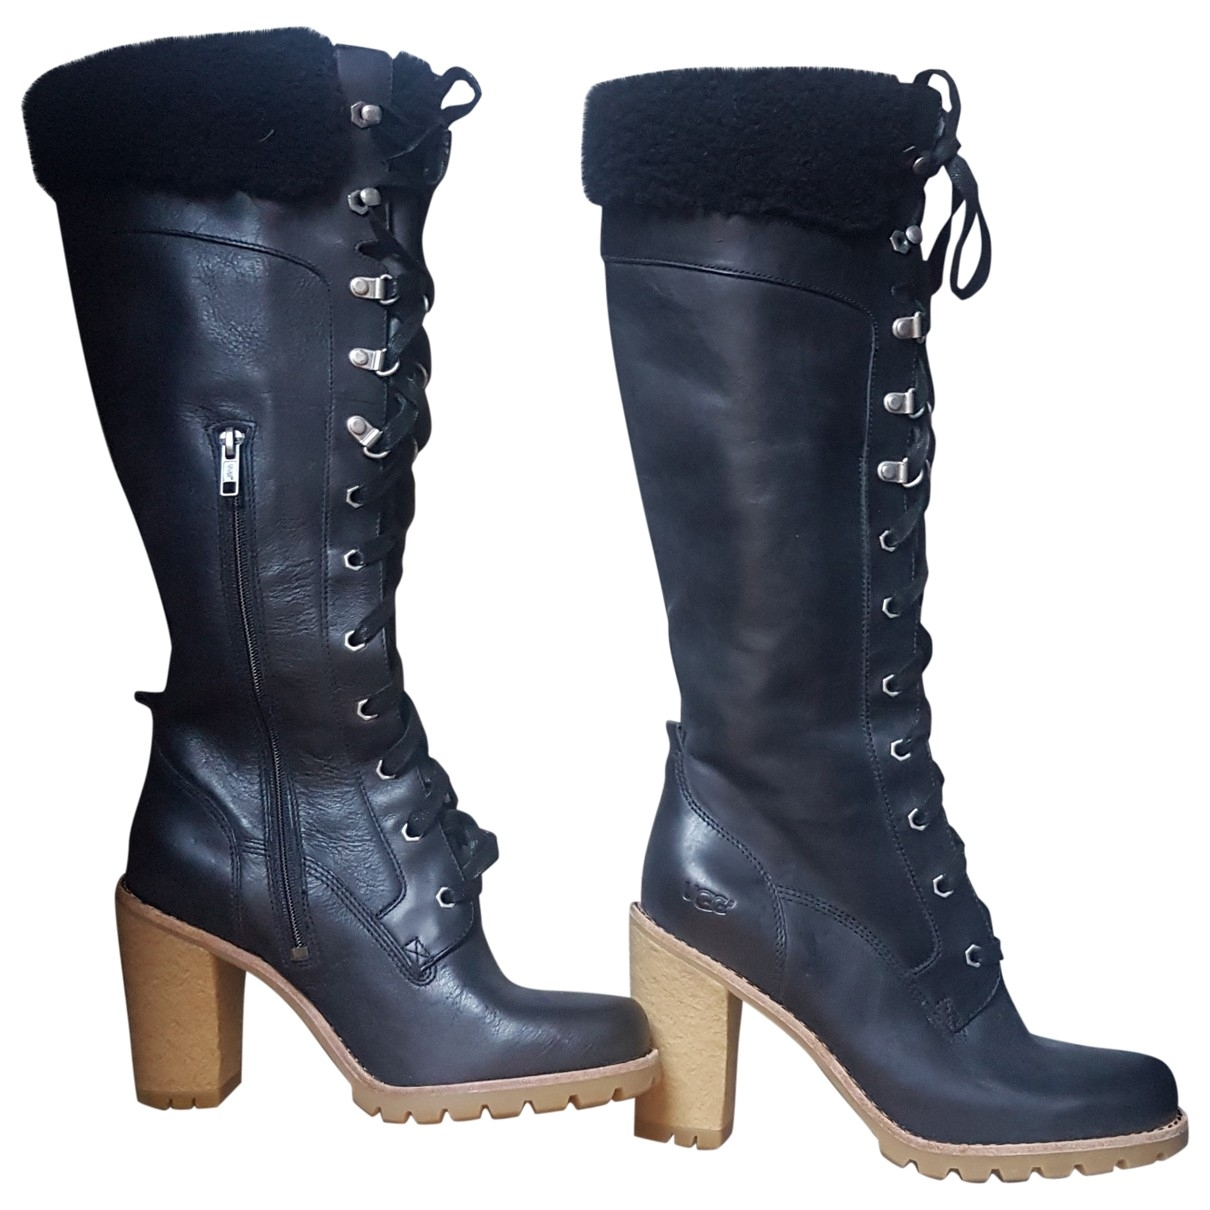 Ugg \N Black Leather Boots for Women 38 EU